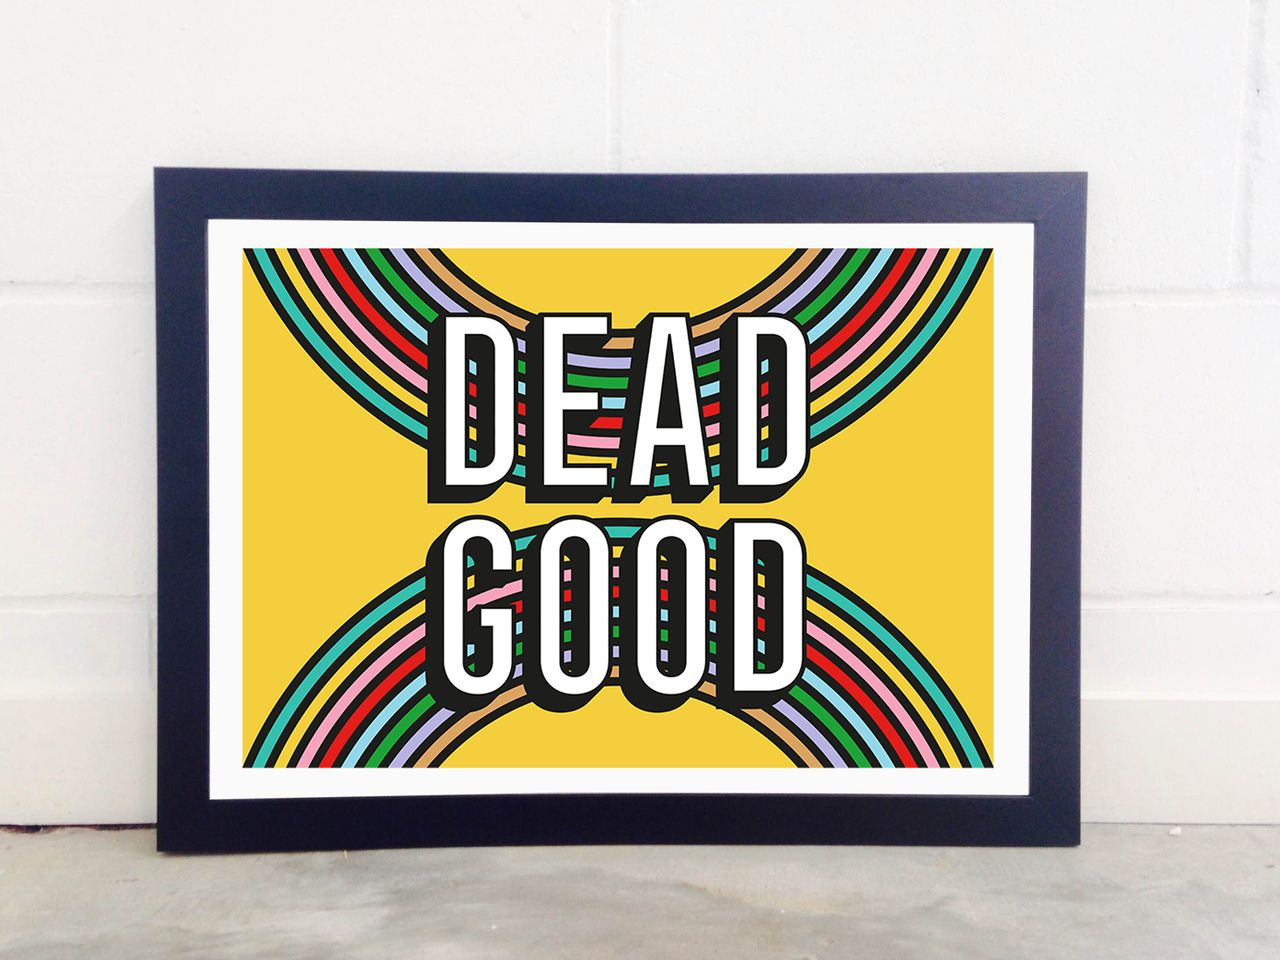 Dead Good II | Buy prints online, Colorful wall art and Framed art ...